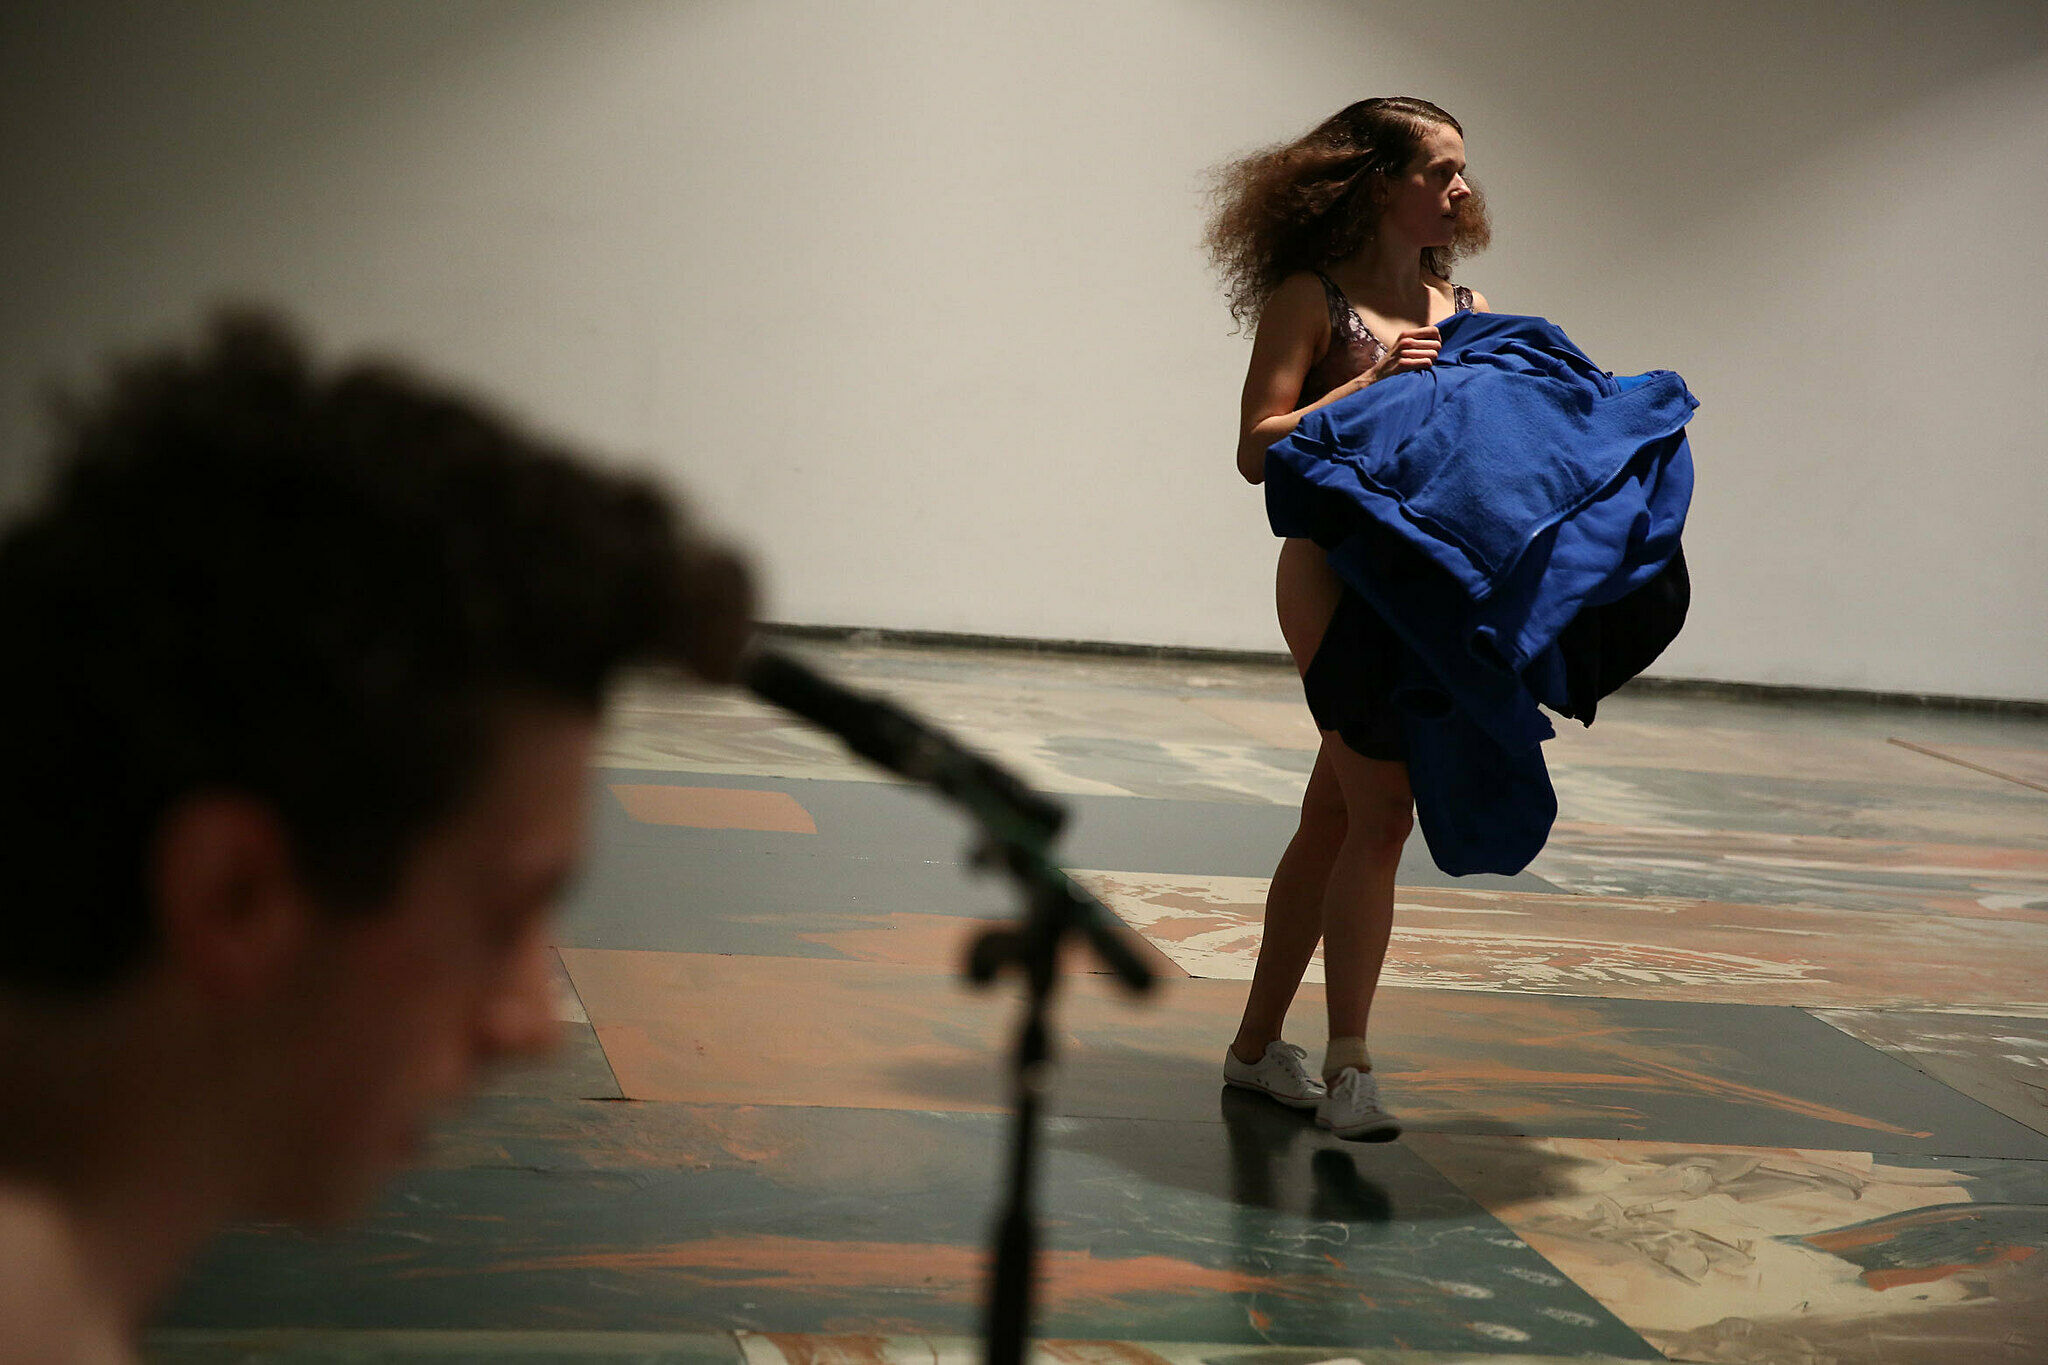 A dancer holding a blue outfit.